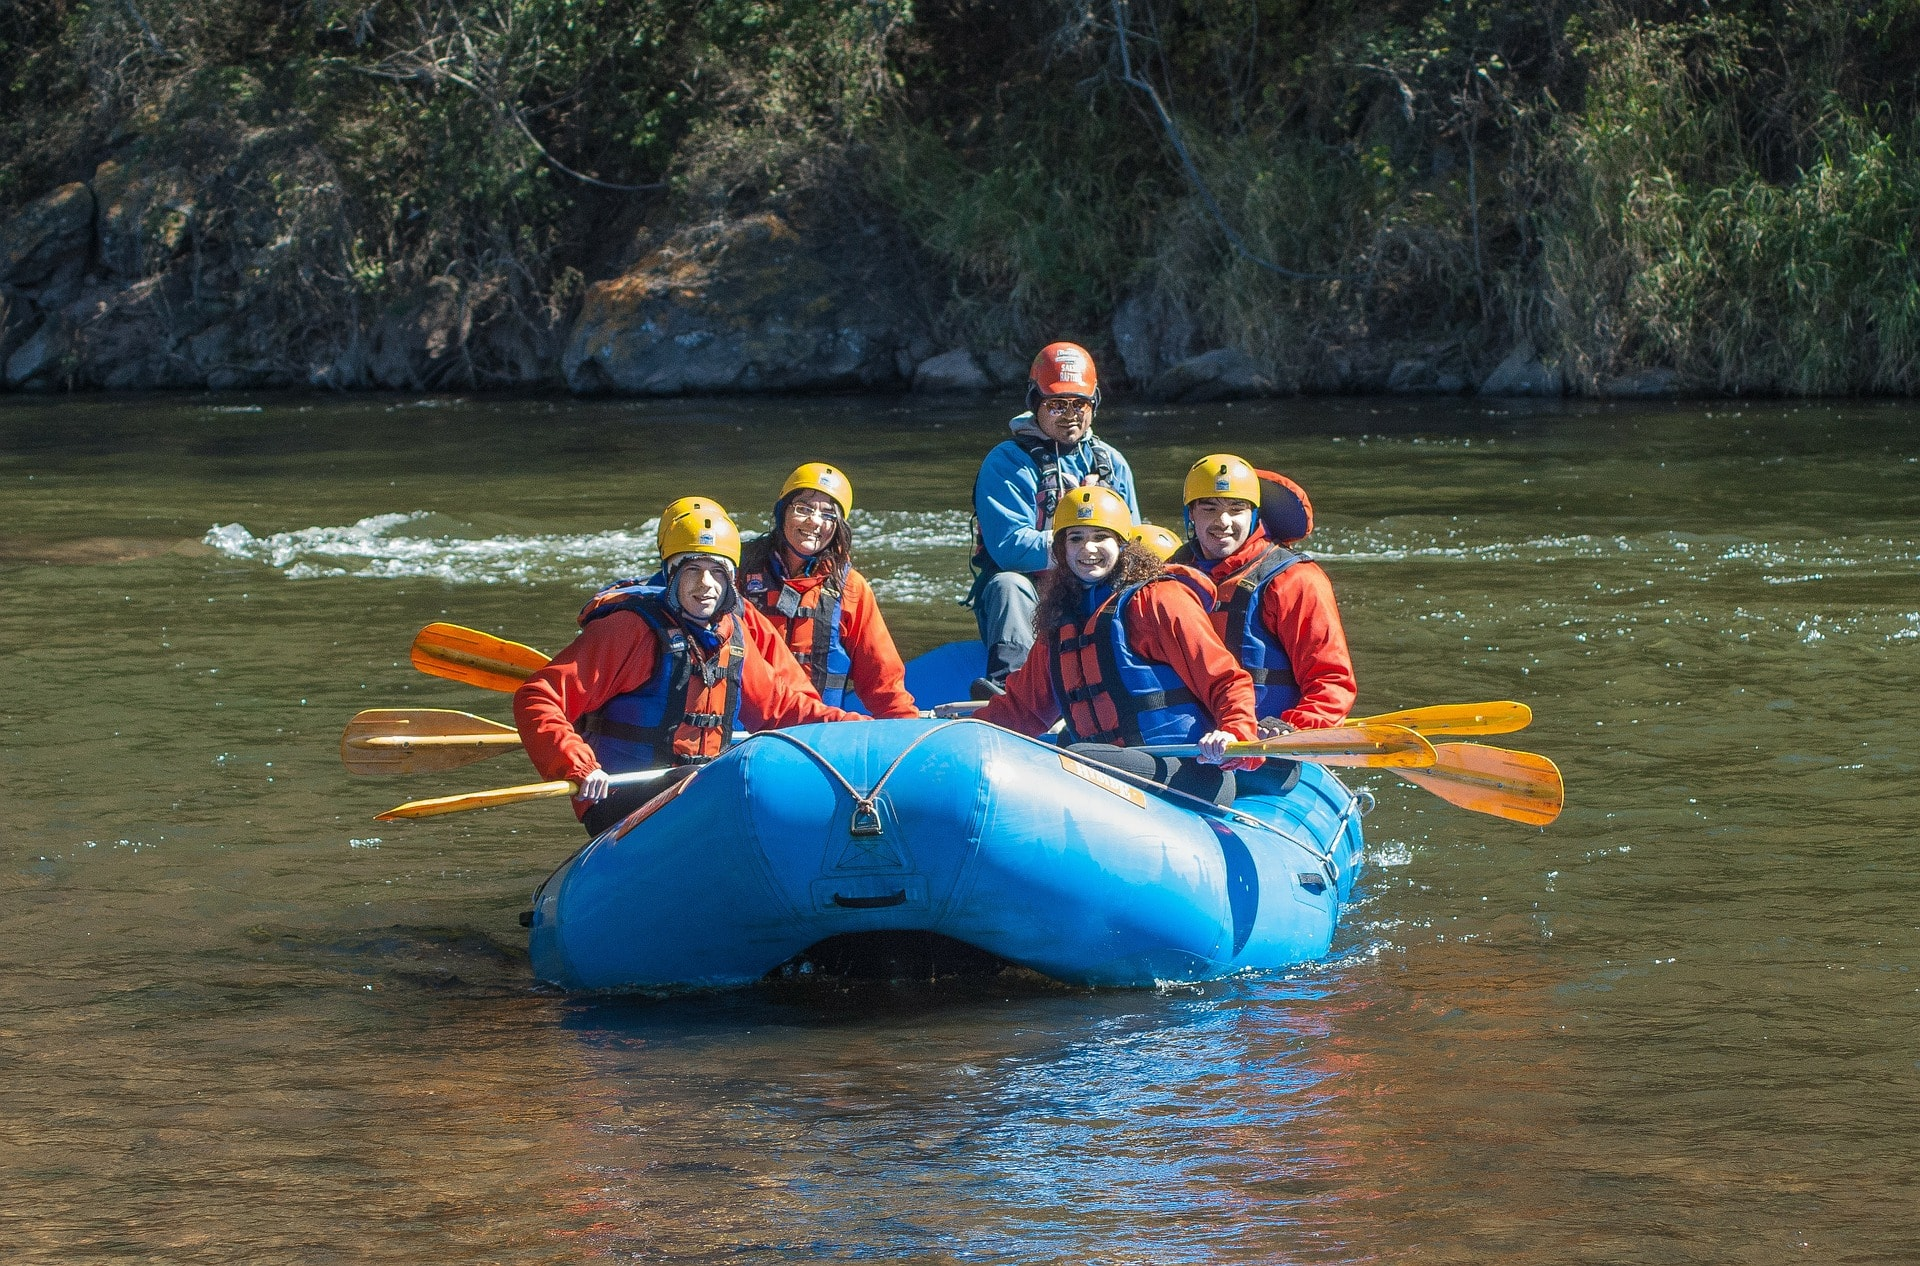 Students river-rafting for school group travel near Vancouver, CA